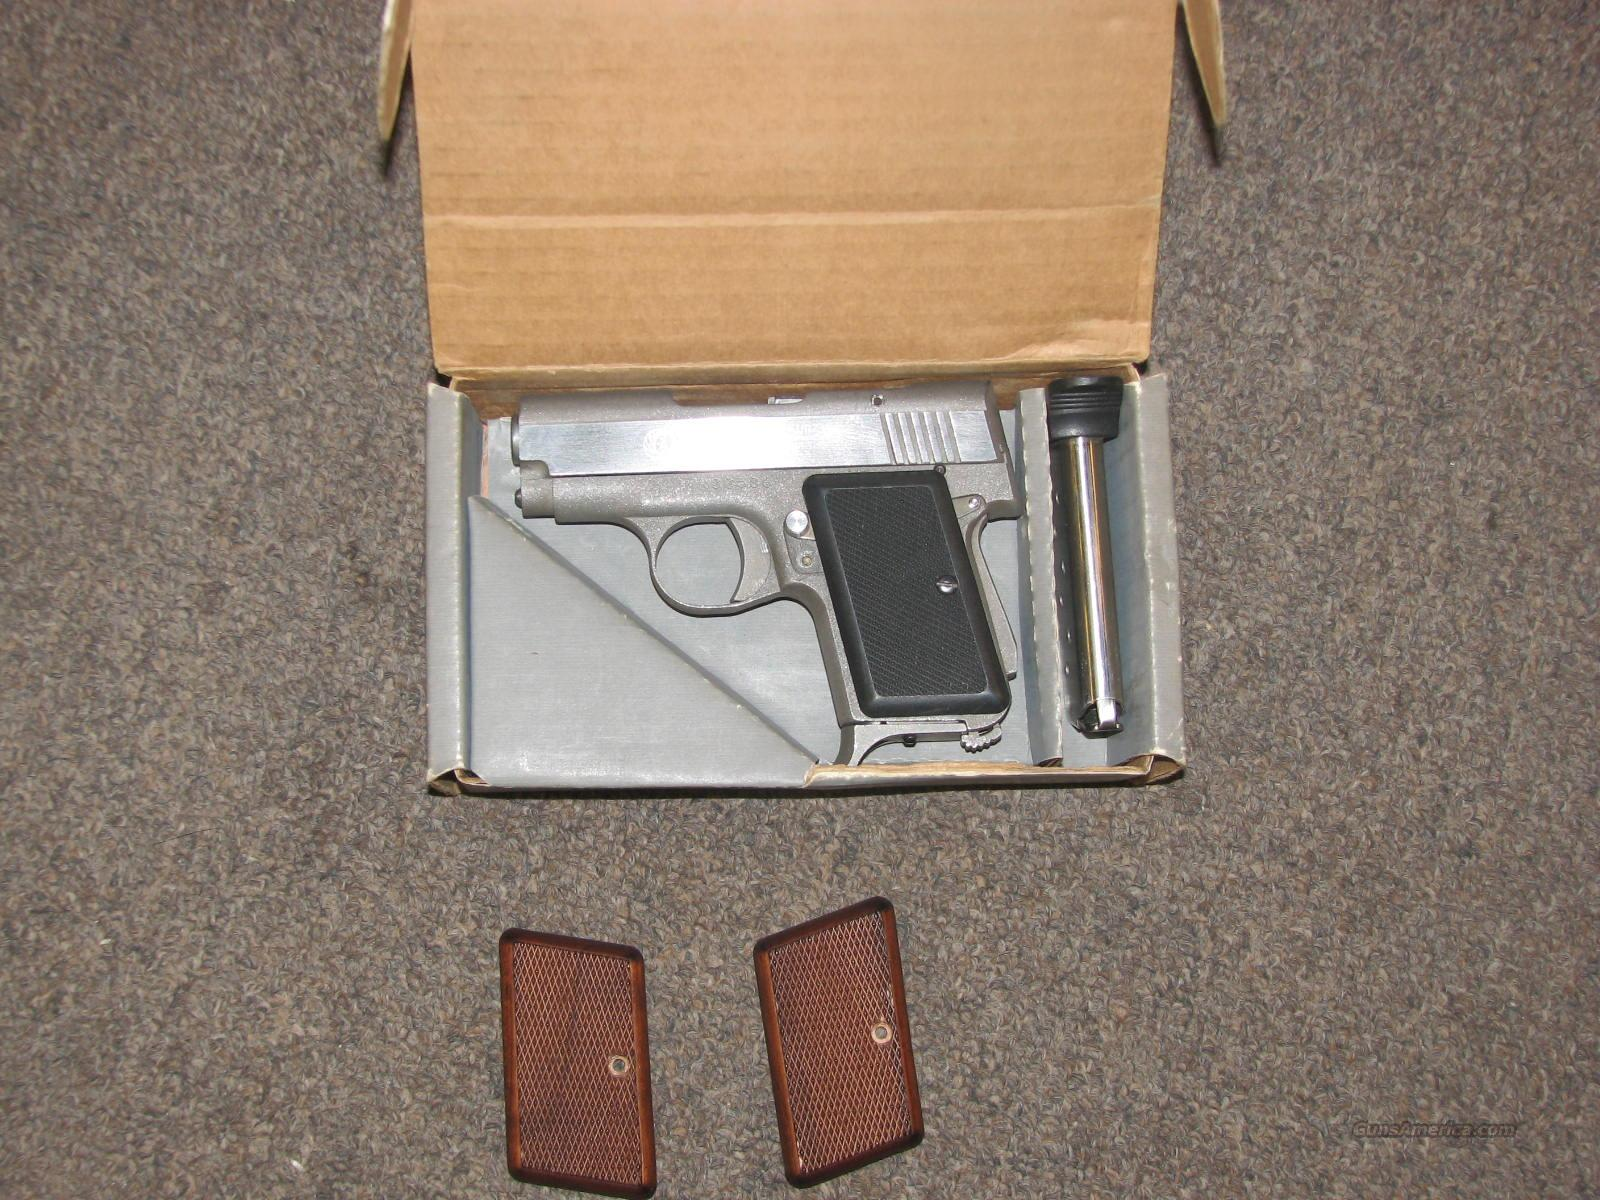 AMT BACKUP II STAINLESS .380 ACP - LIKE NIB!  Guns > Pistols > AMT Pistols > Other